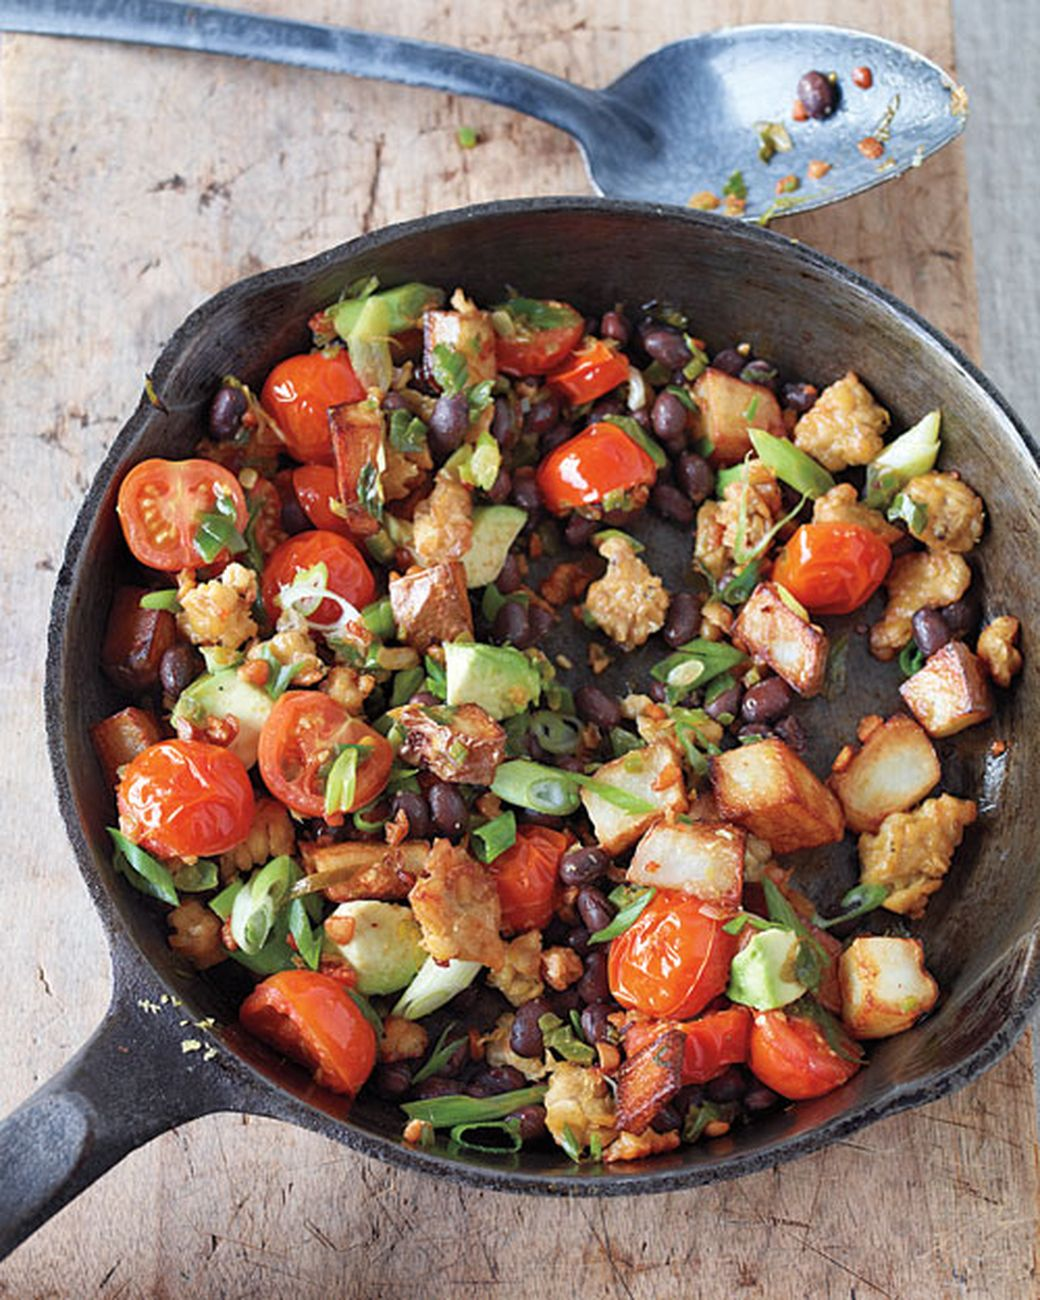 No One Will Miss Eggs When You Serve Up This Vegan Breakfast Meal Whole Food Recipes Breakfast Hash Vegan Cooking